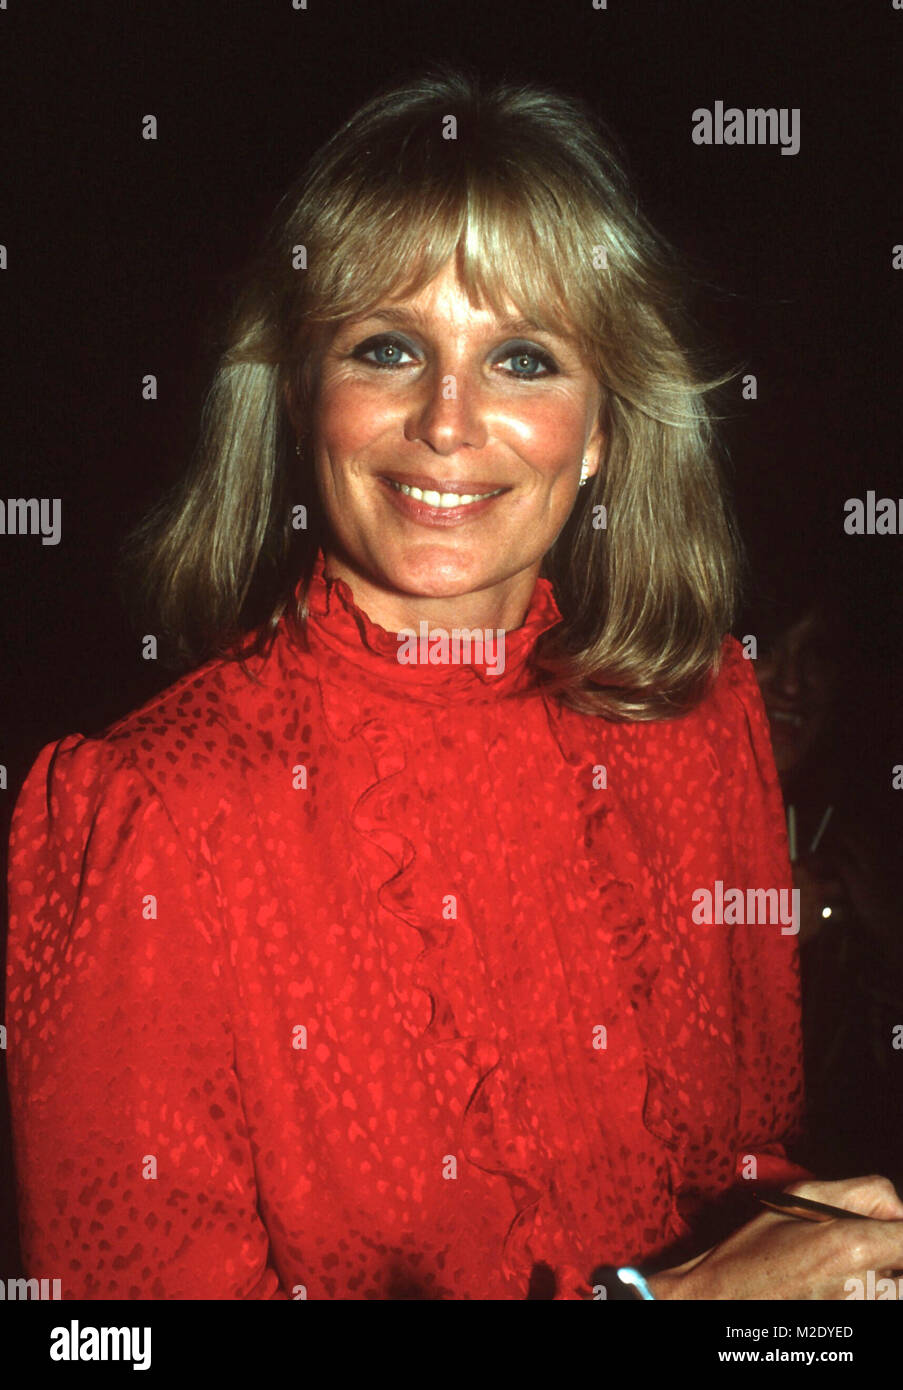 Cached Pictures of linda evans today